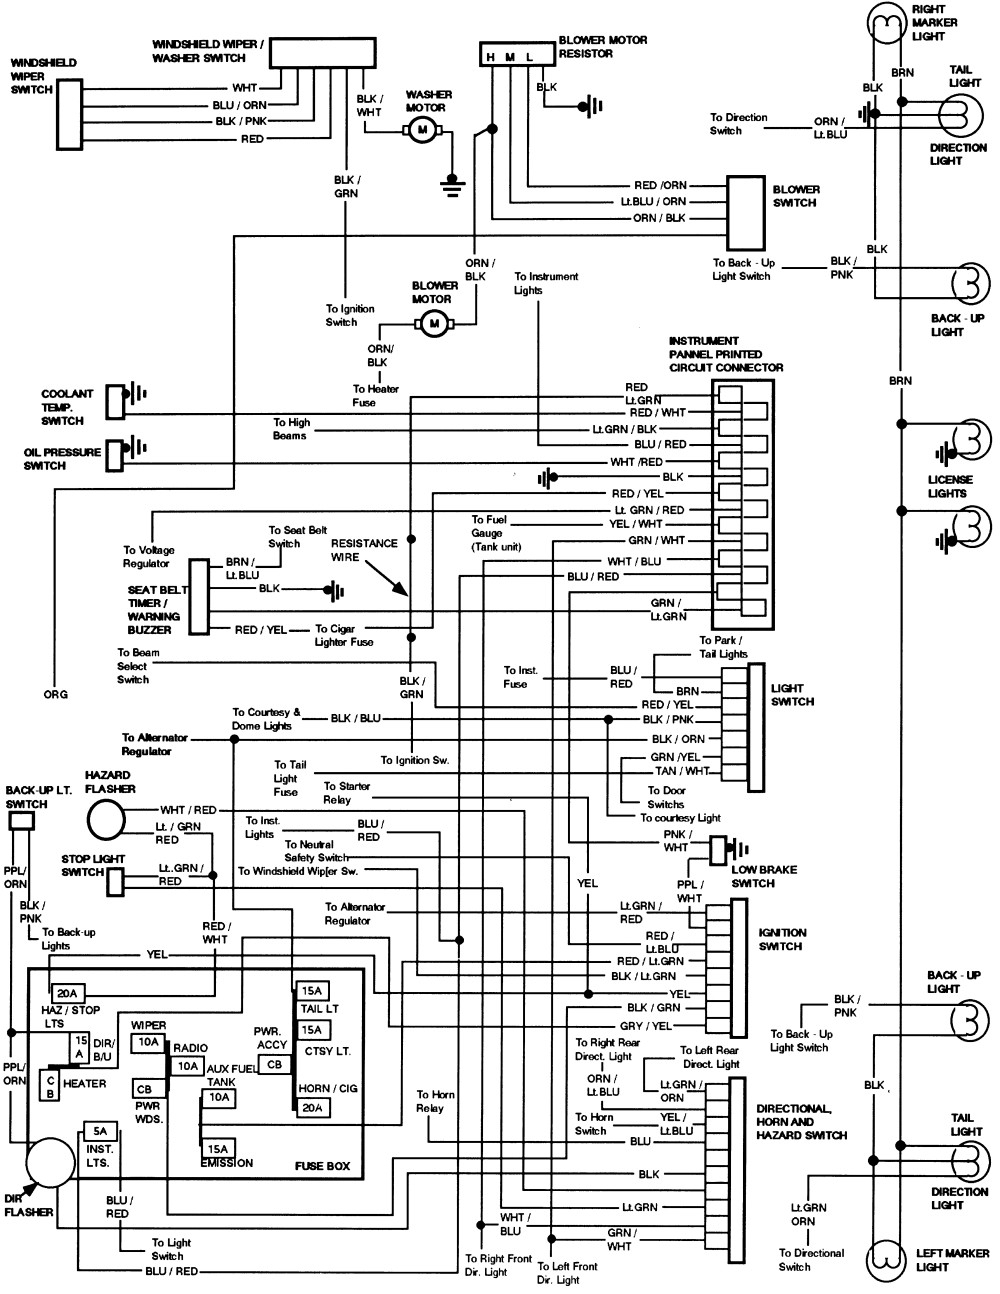 Diagram 1990 F250 Truck Wiring Diagram Full Version Hd Quality Wiring Diagram Blogxgoo Mefpie Fr